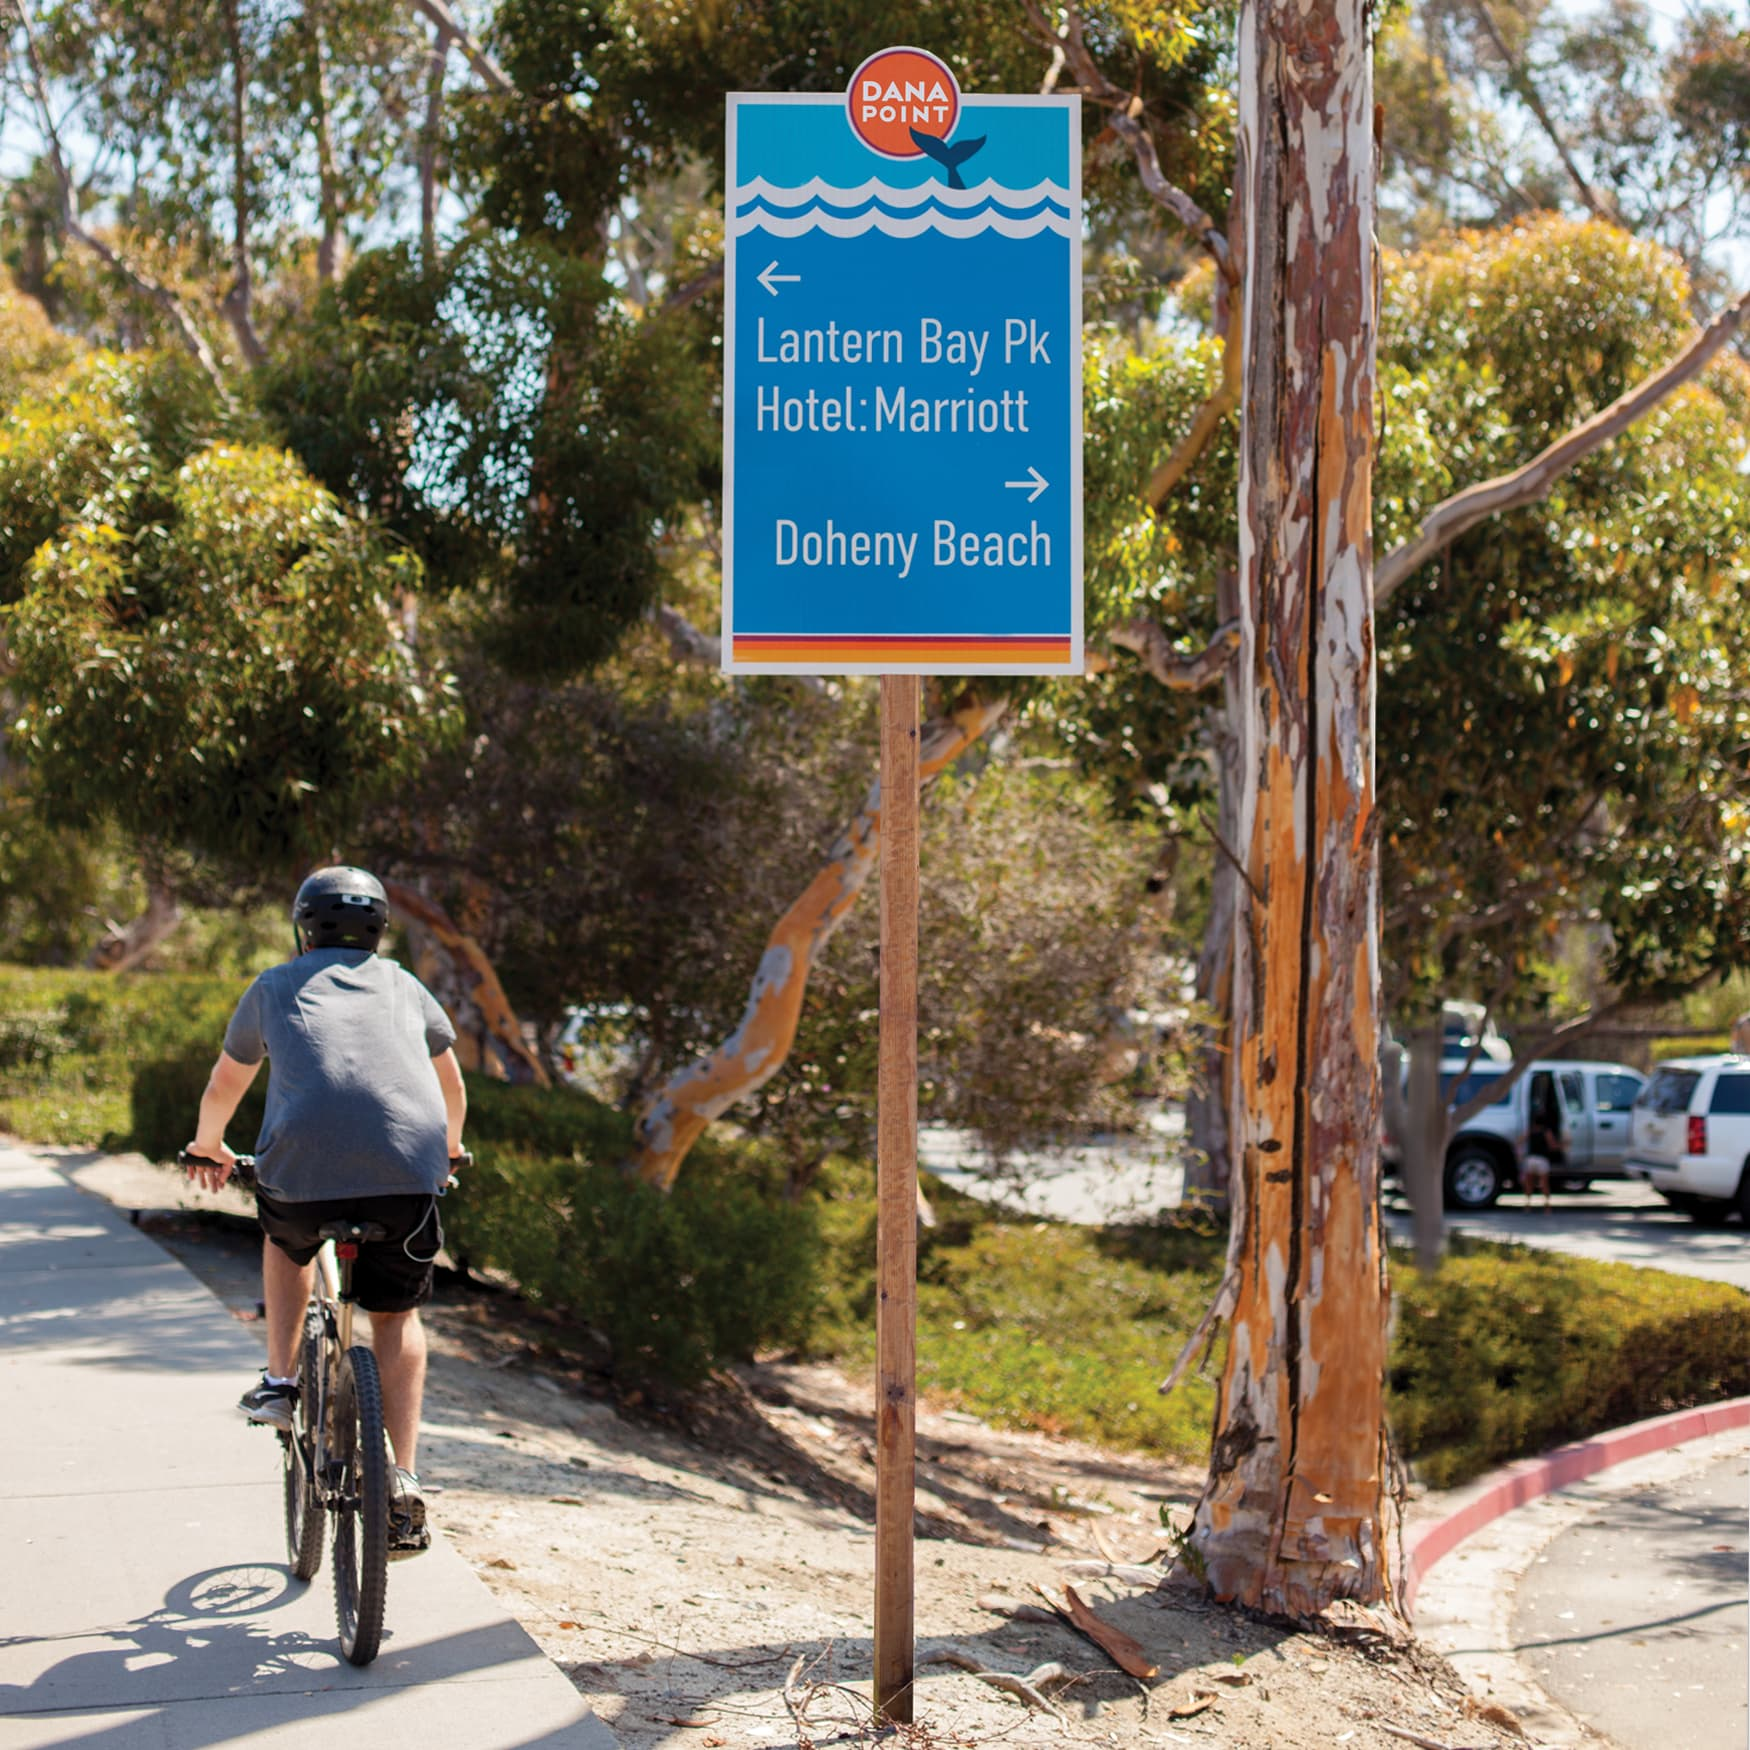 The City of Dana Point branded wayfinding system parking directional sign